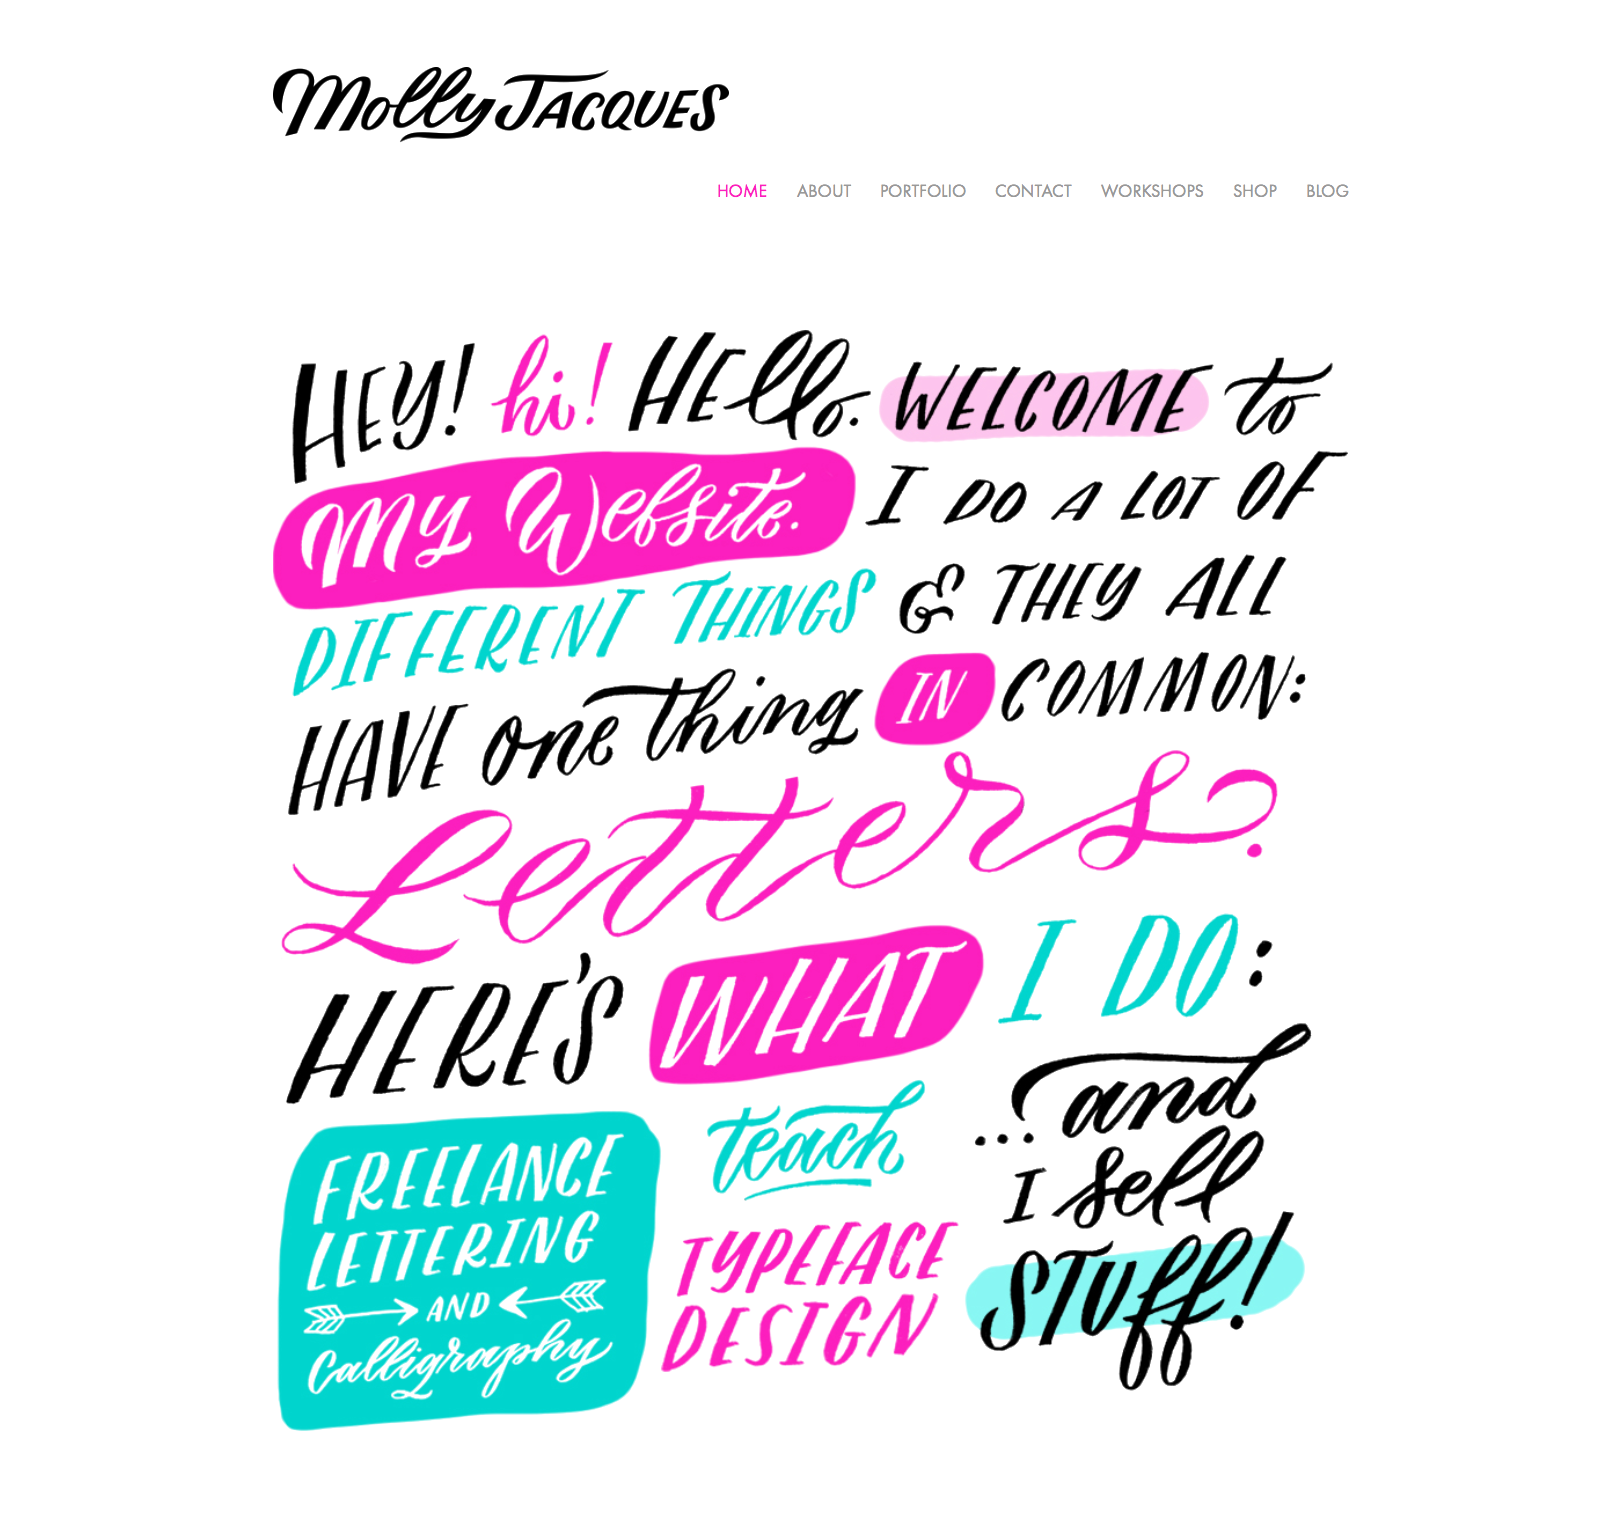 Molly Jacques  is a well-known letterer and illustrator, and she cleverly uses her skills to outline her services in a way that draws visitors in and gives them a great first impression.